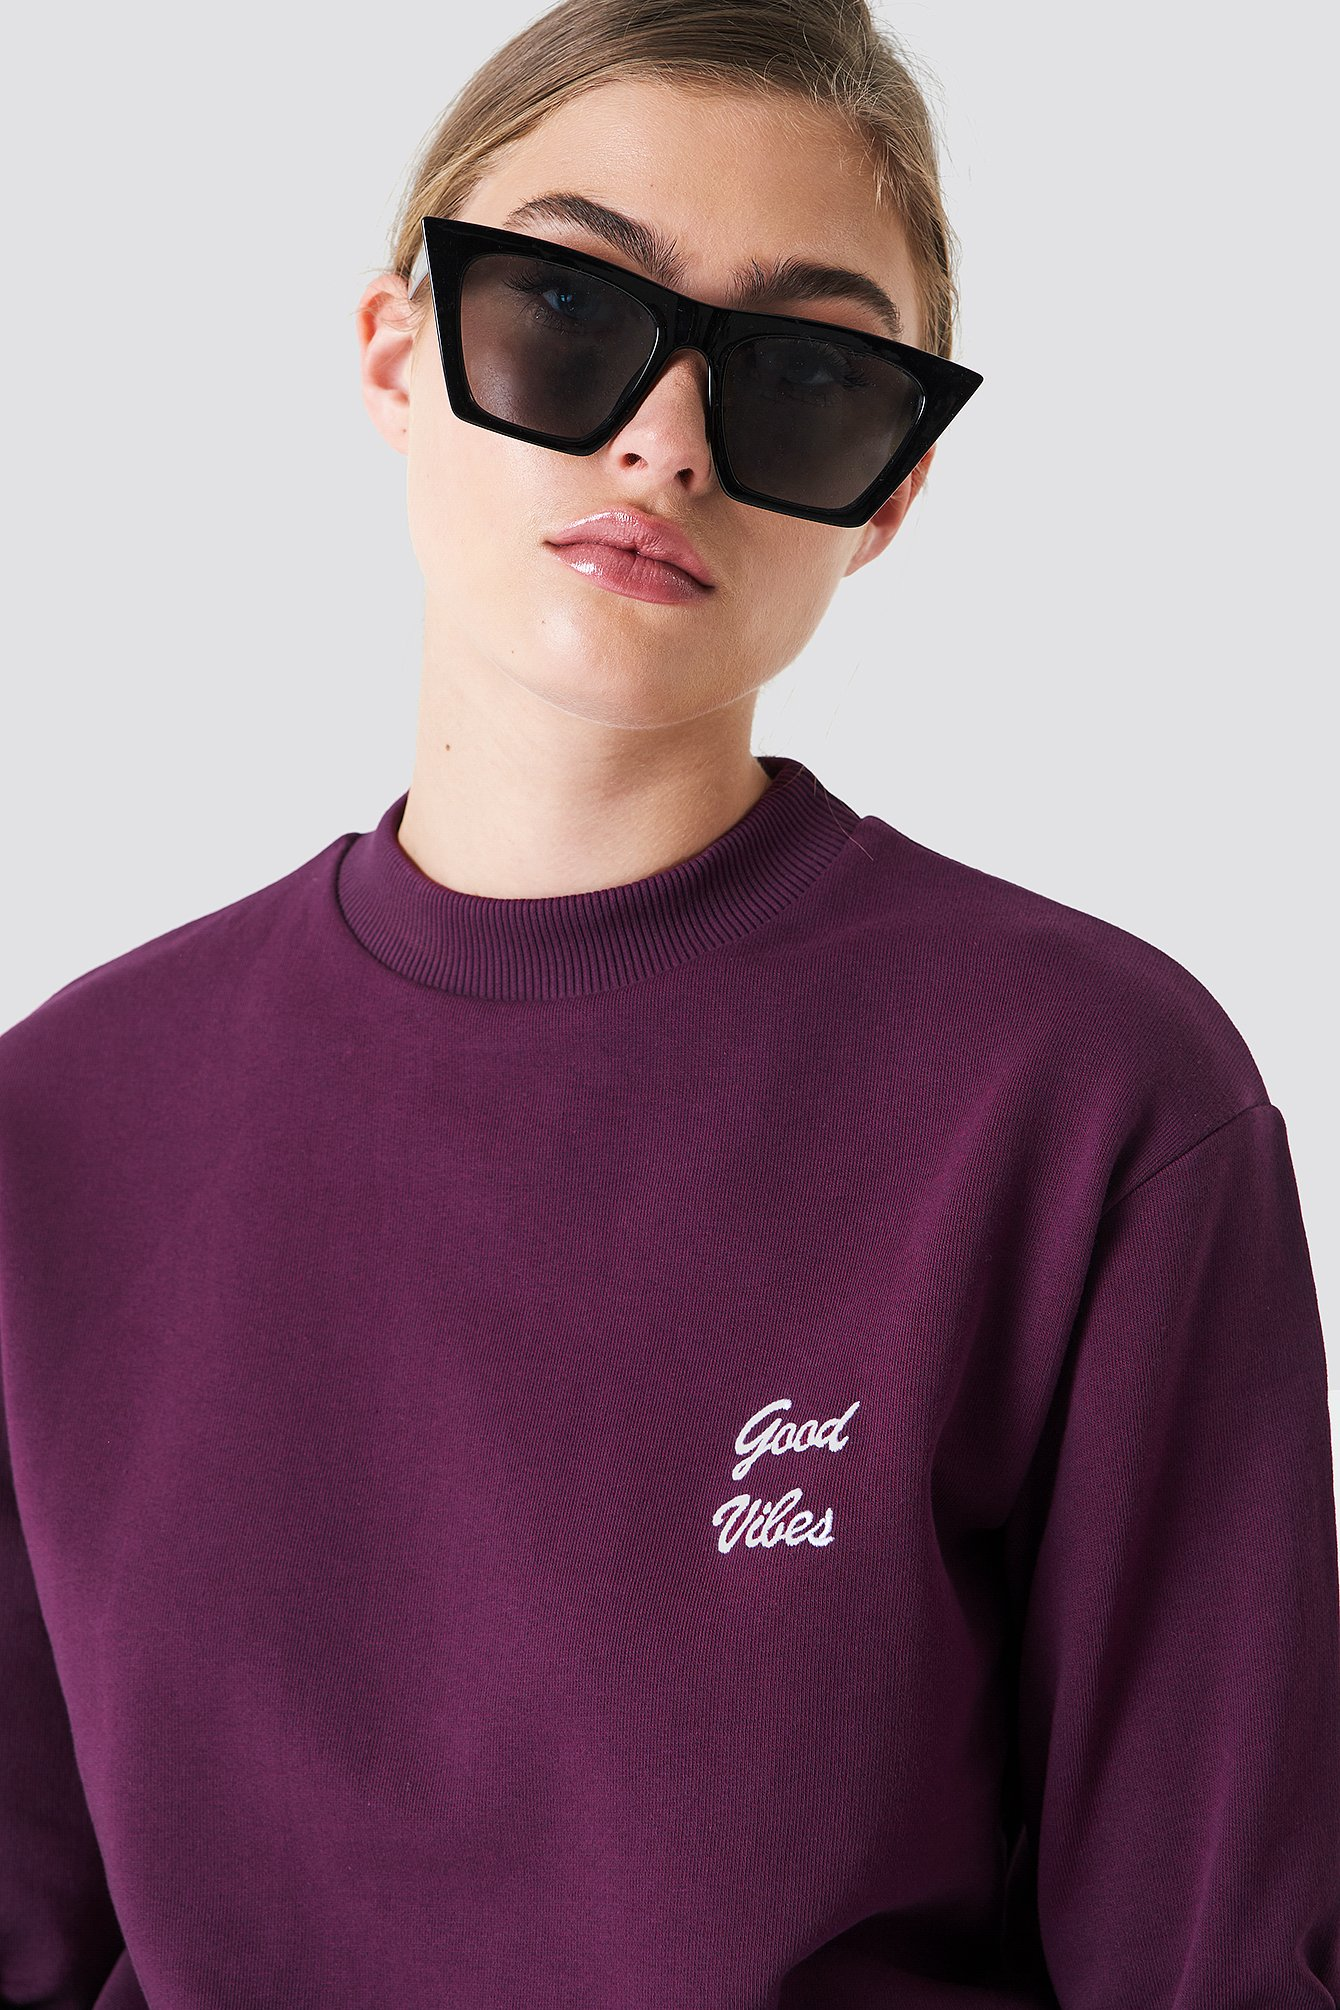 Good Vibes Sweatshirt NA-KD.COM